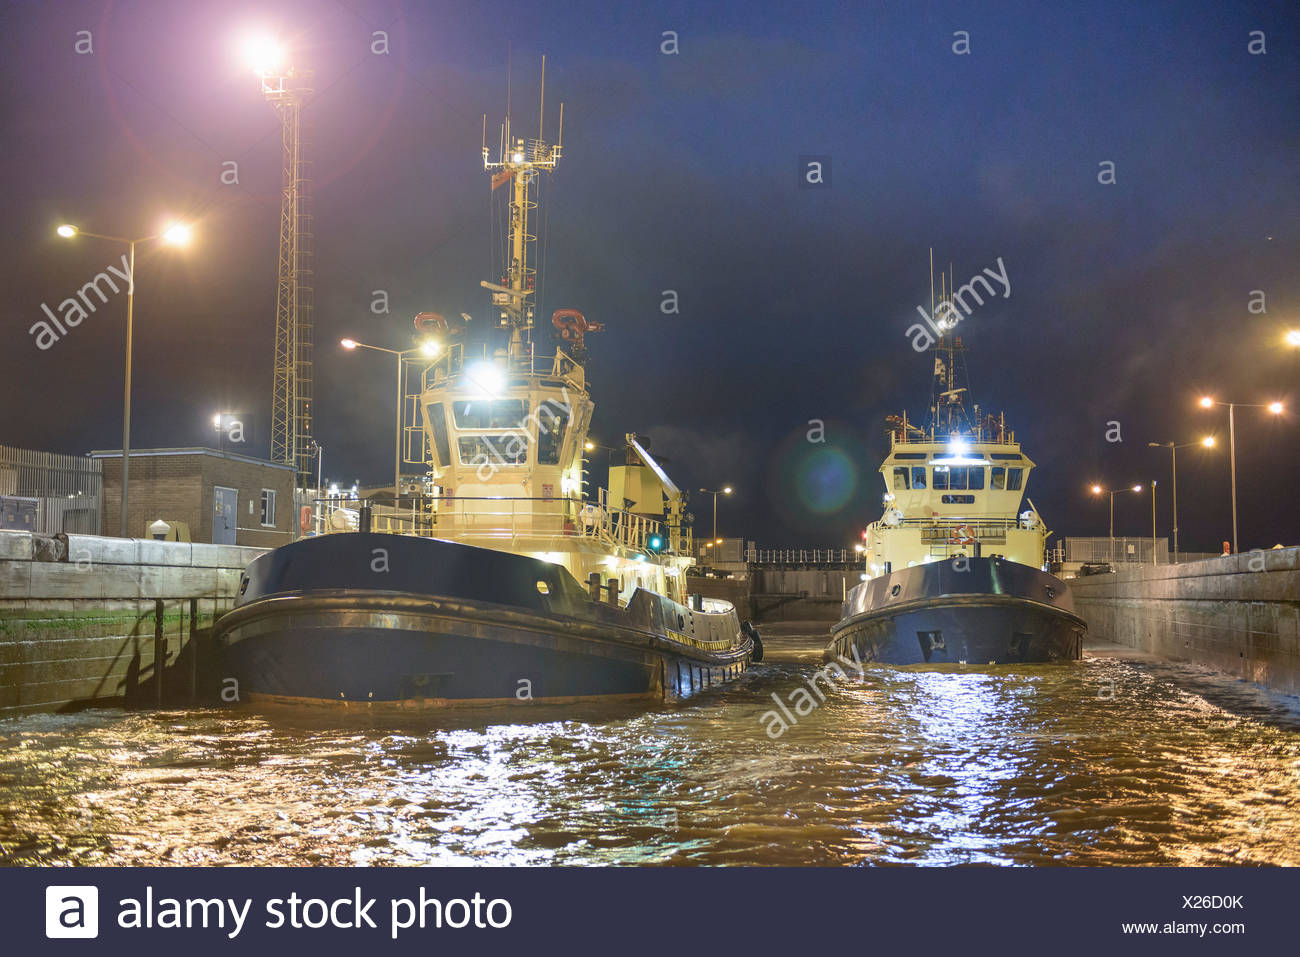 Tugboats docked in harbor at night - Stock Image